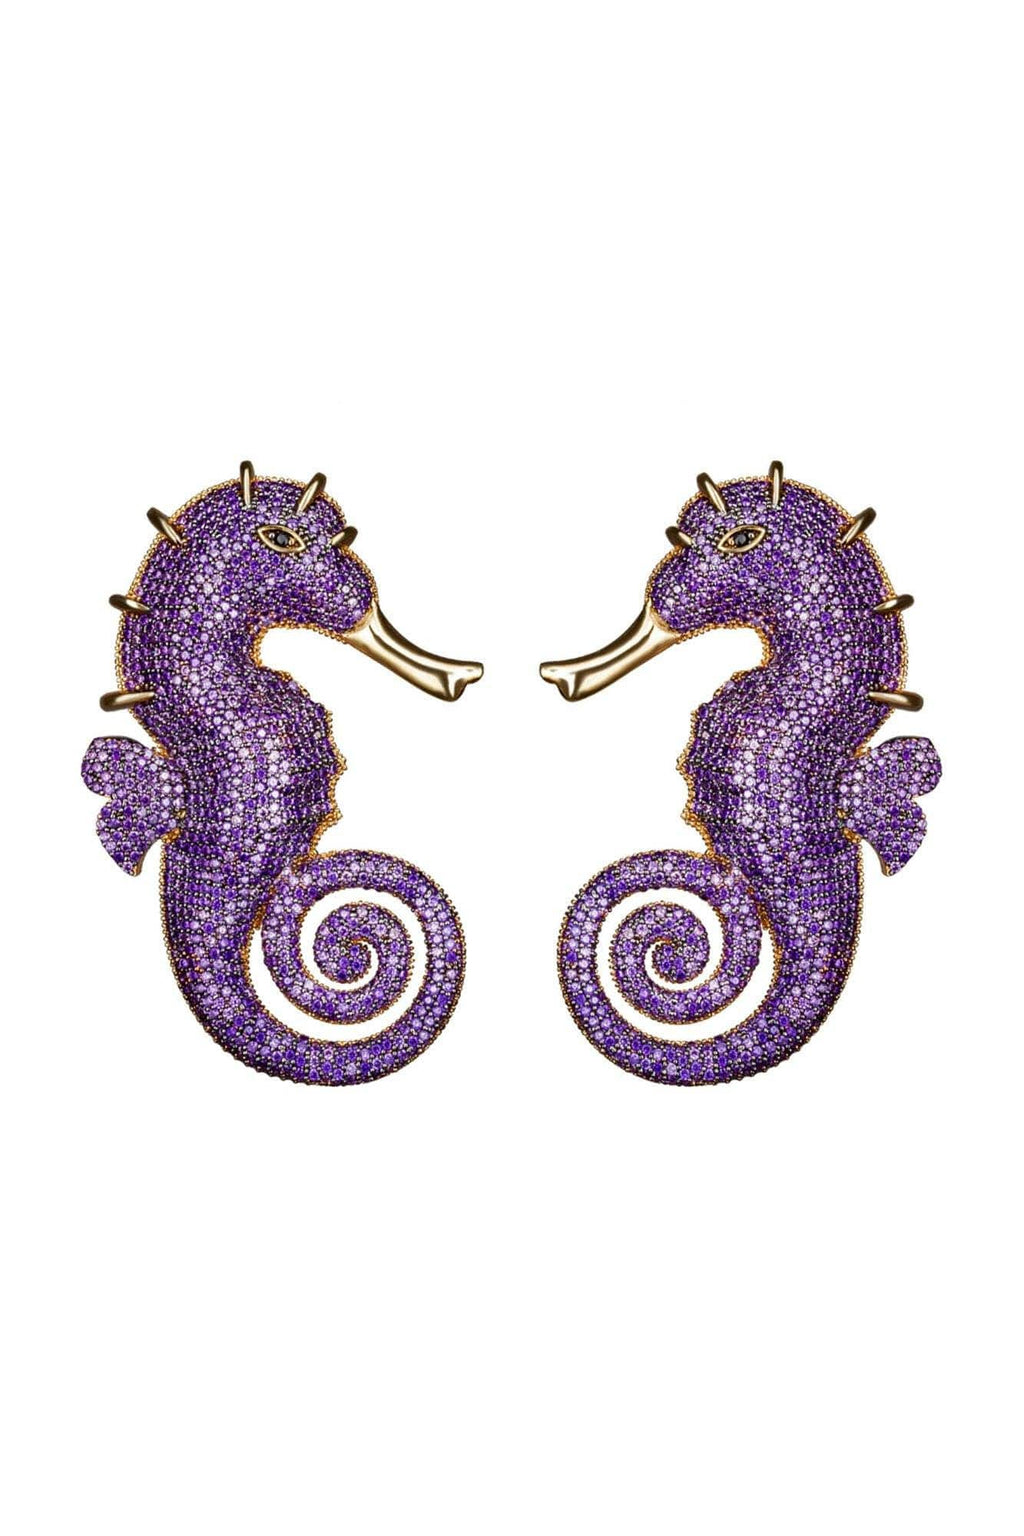 Seahorse Amethyst Earrings - BYTRIBUTE